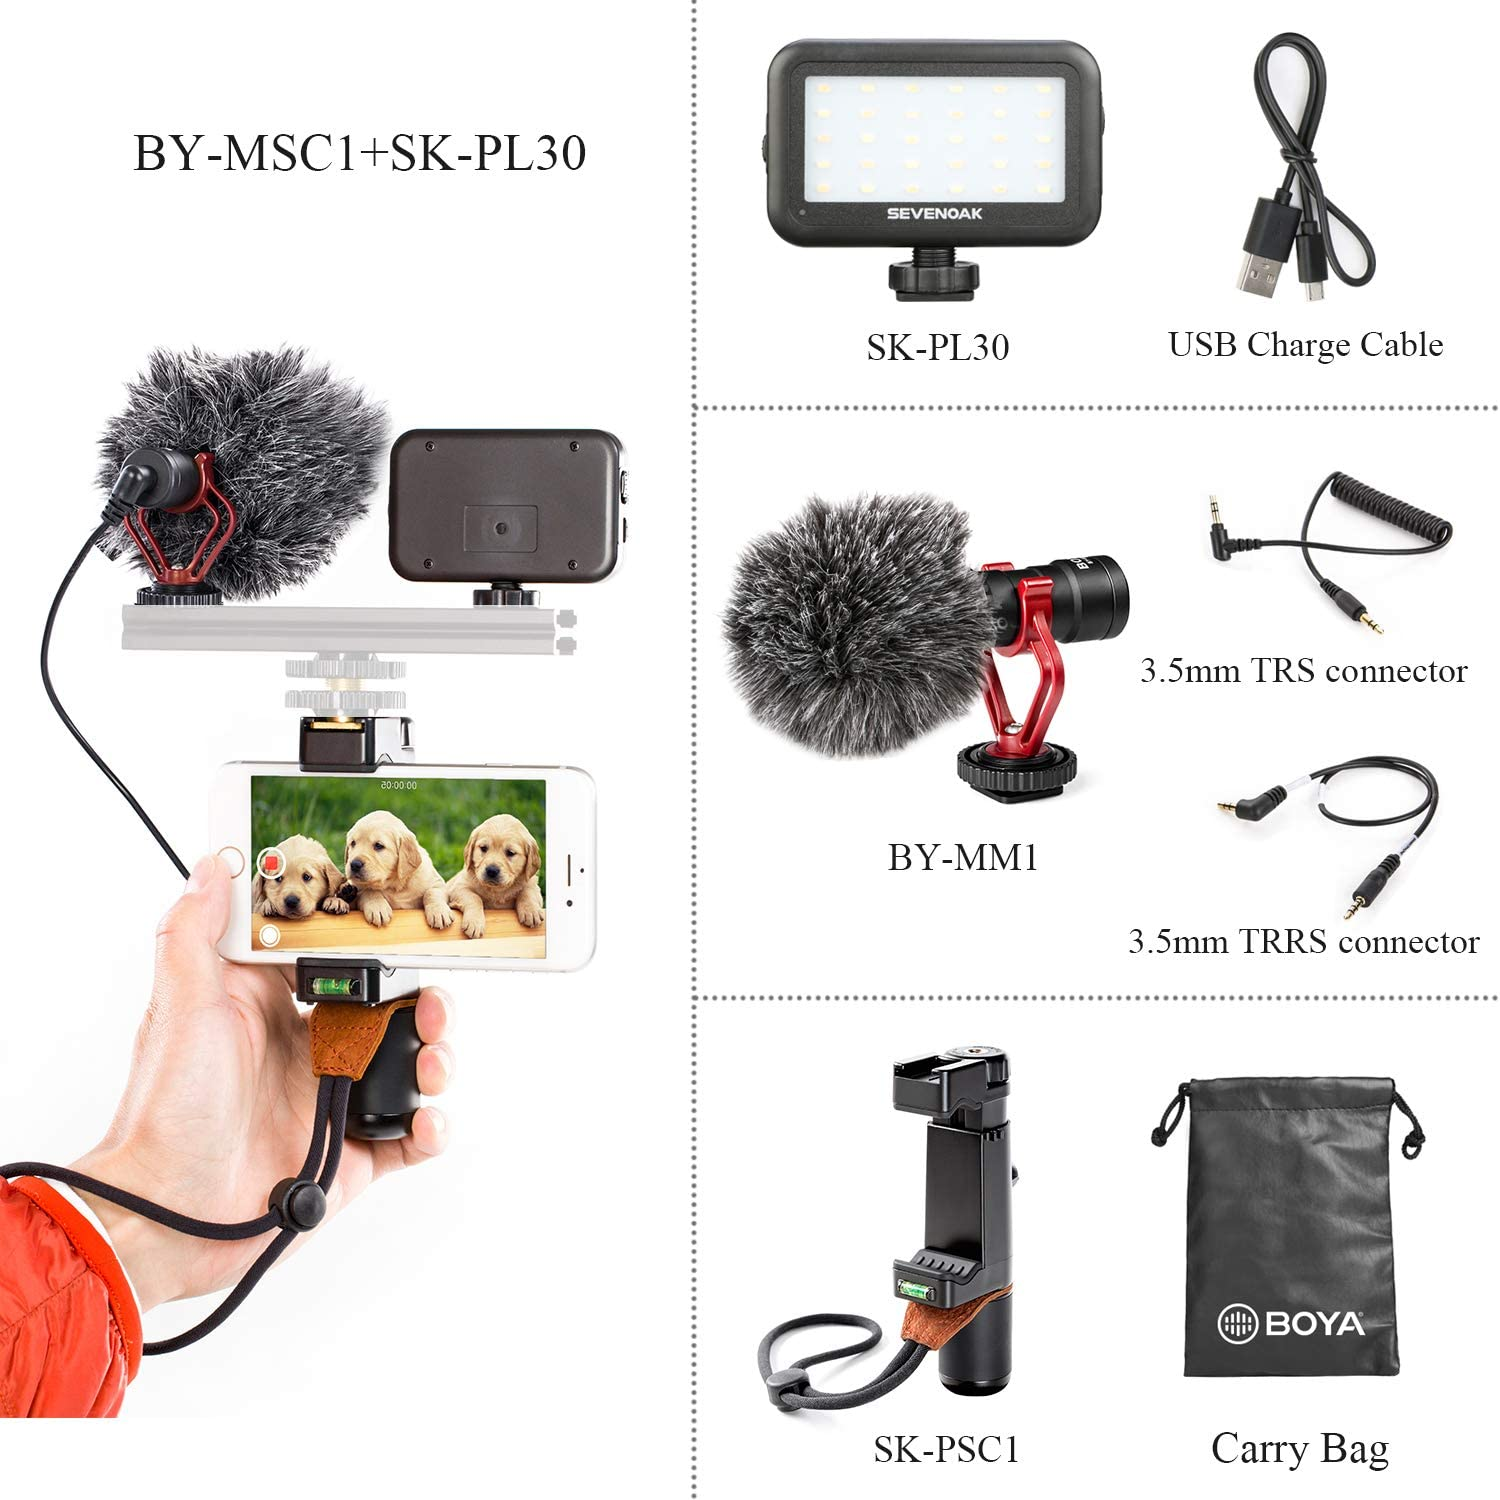 BOYA by-MM1 Shotgun Microphone with PSC1 SmartGrip Selfie Stand with PL30 Light for iPhone X 8 7 7 Plus Samsung Android Smartphone SLR Camera Computer Tripod Vlog Facebook Livestream YouTube Video: Home Audio & Theater